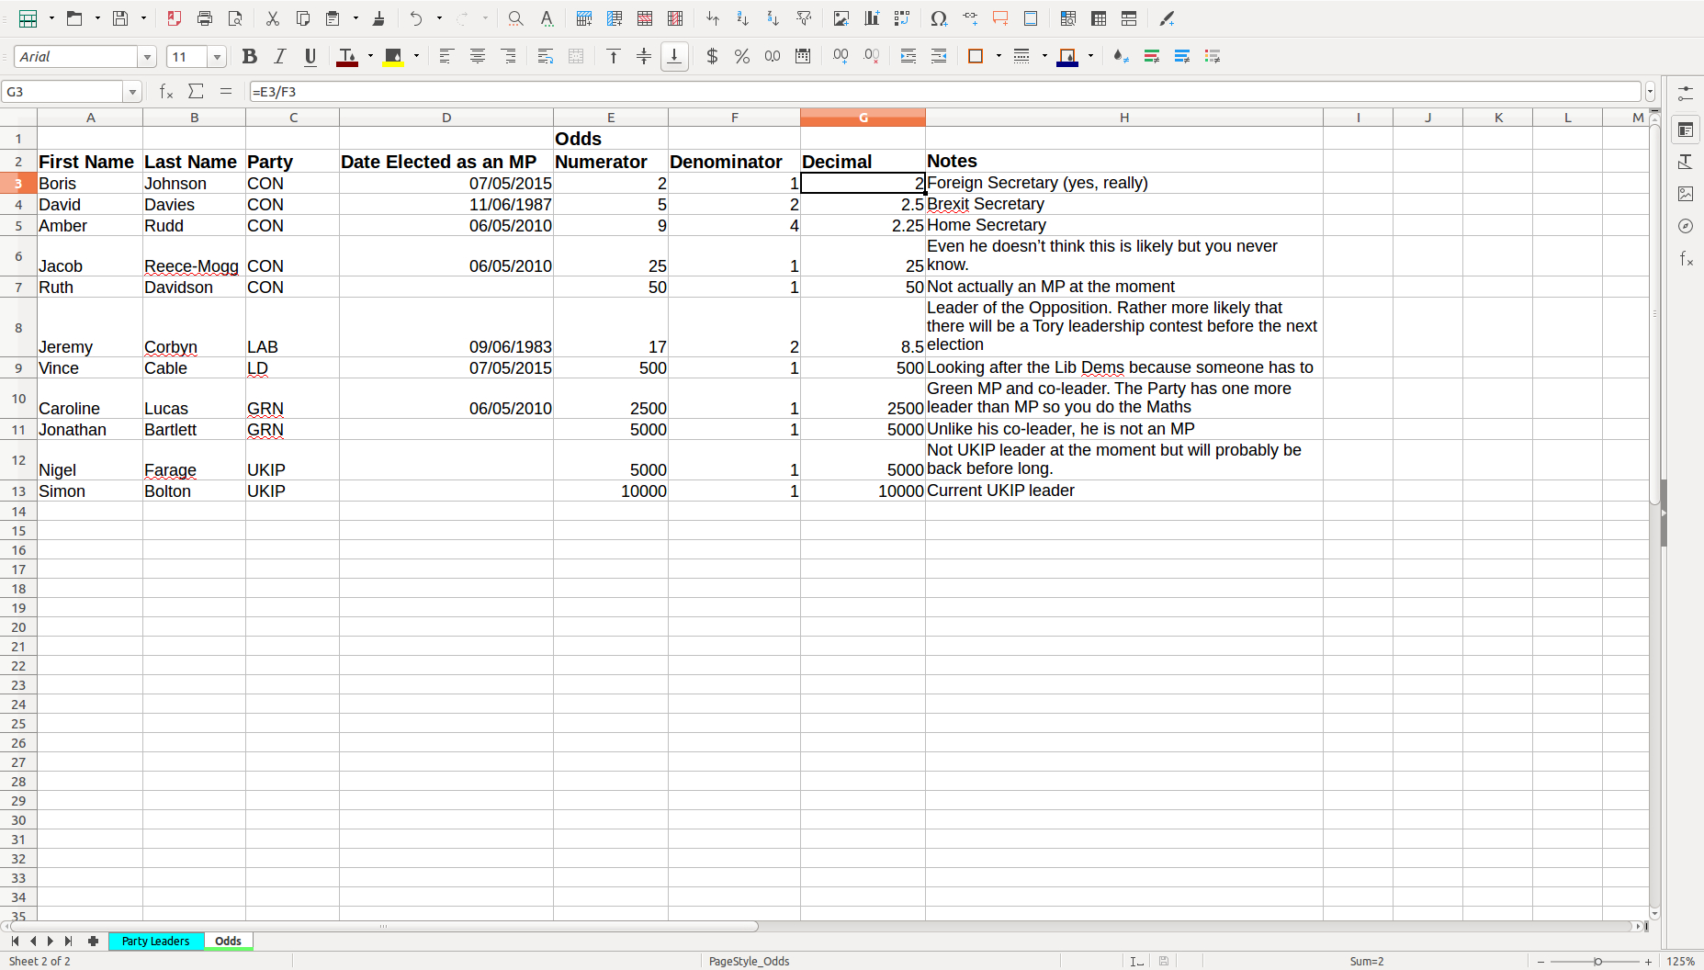 Excel Spreadsheet Database With Importing An Excel Spreadsheet Into An Oracle Database With